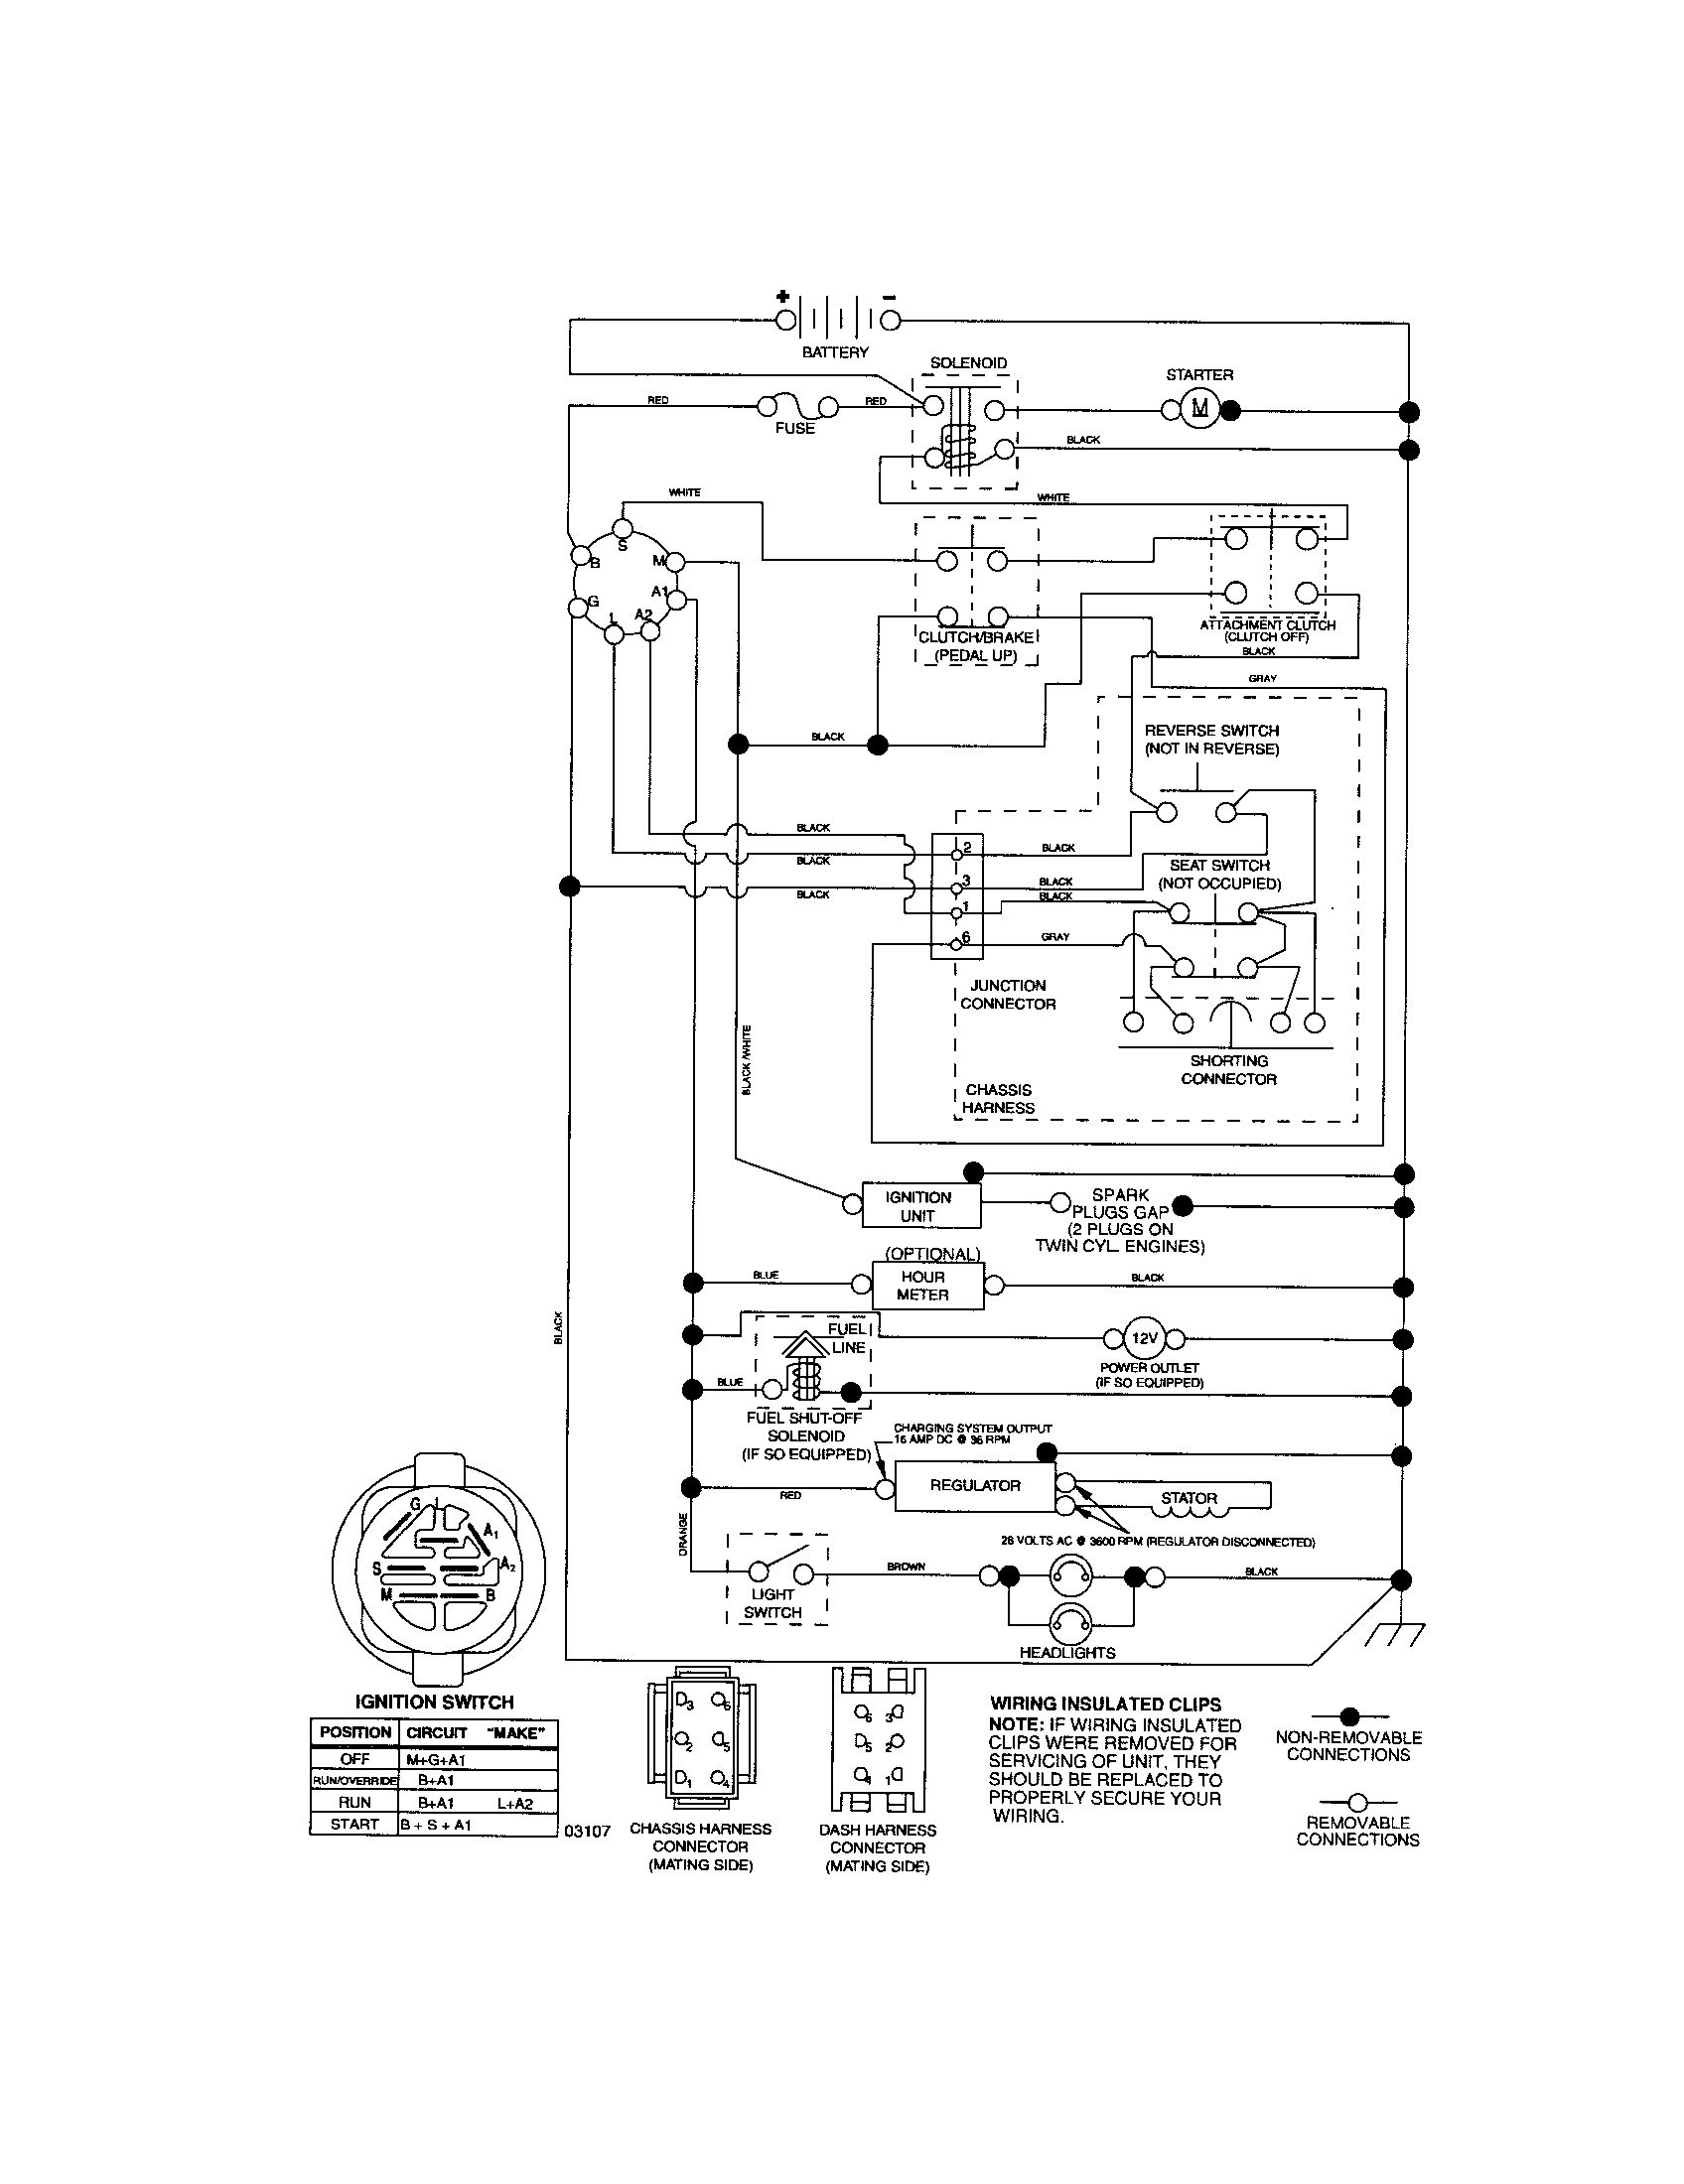 wiring diagram for craftsman lawn tractor